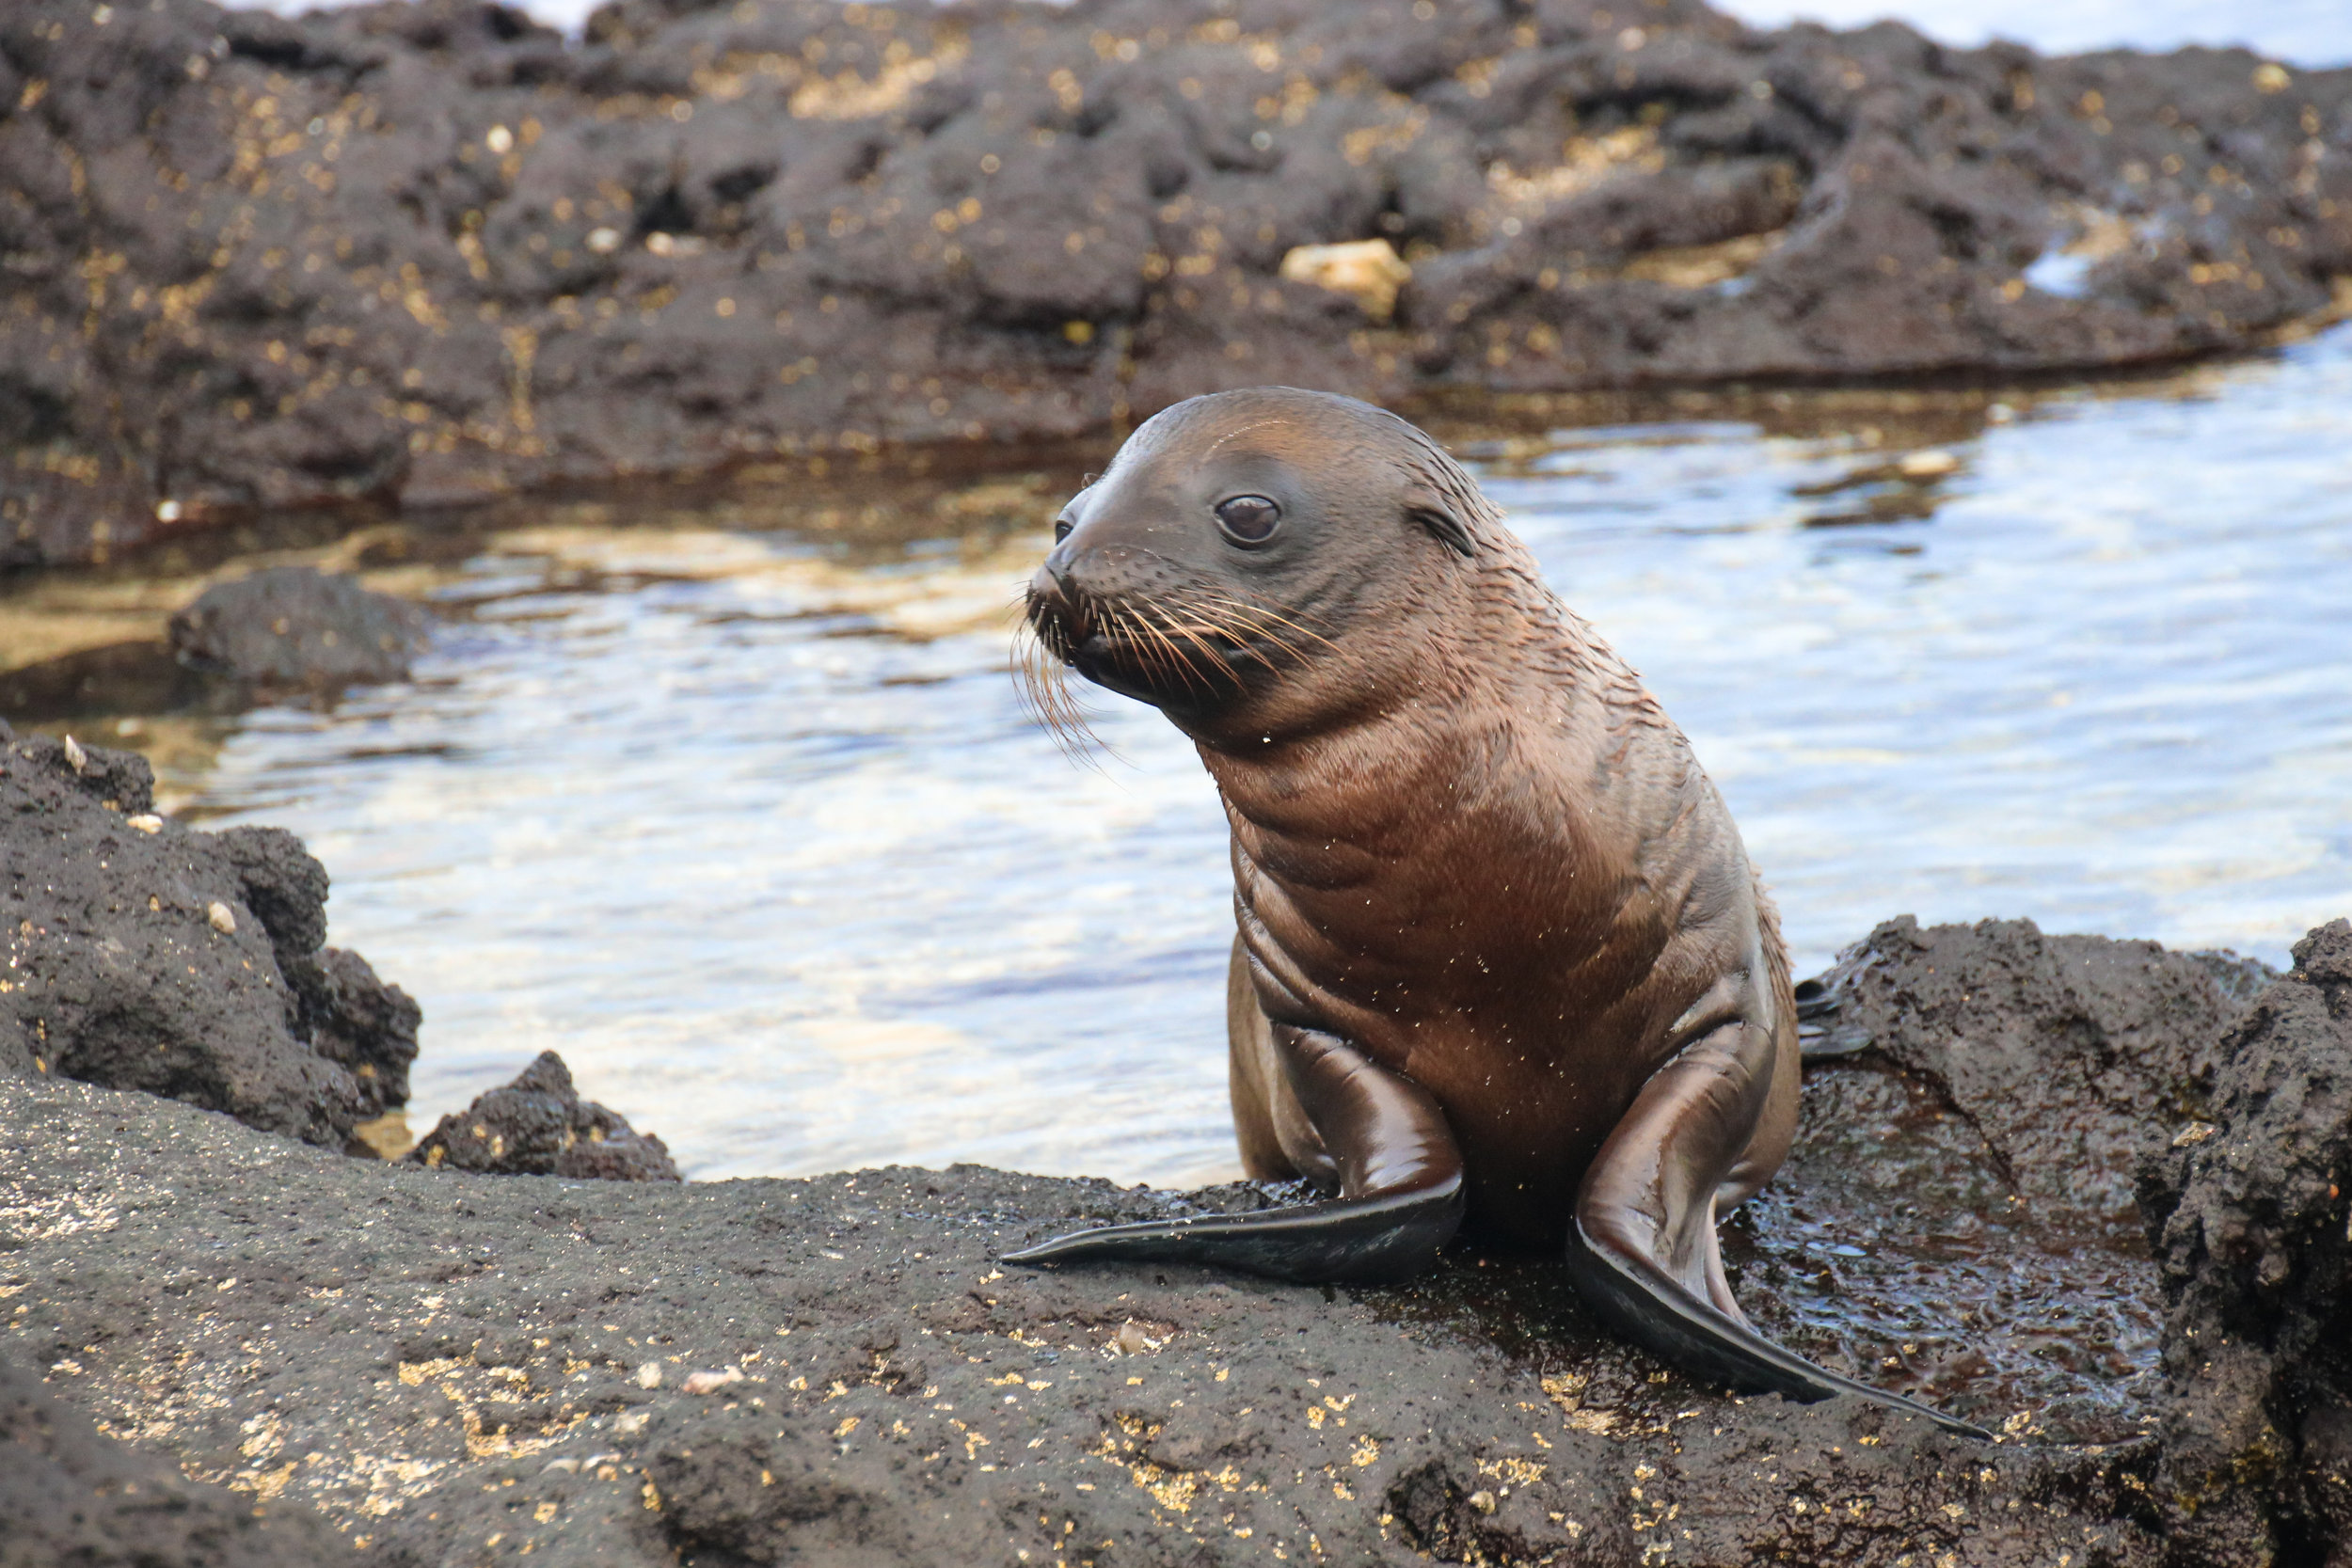 Galapagos sea lion pup. Ecuador. Across Land & Sea